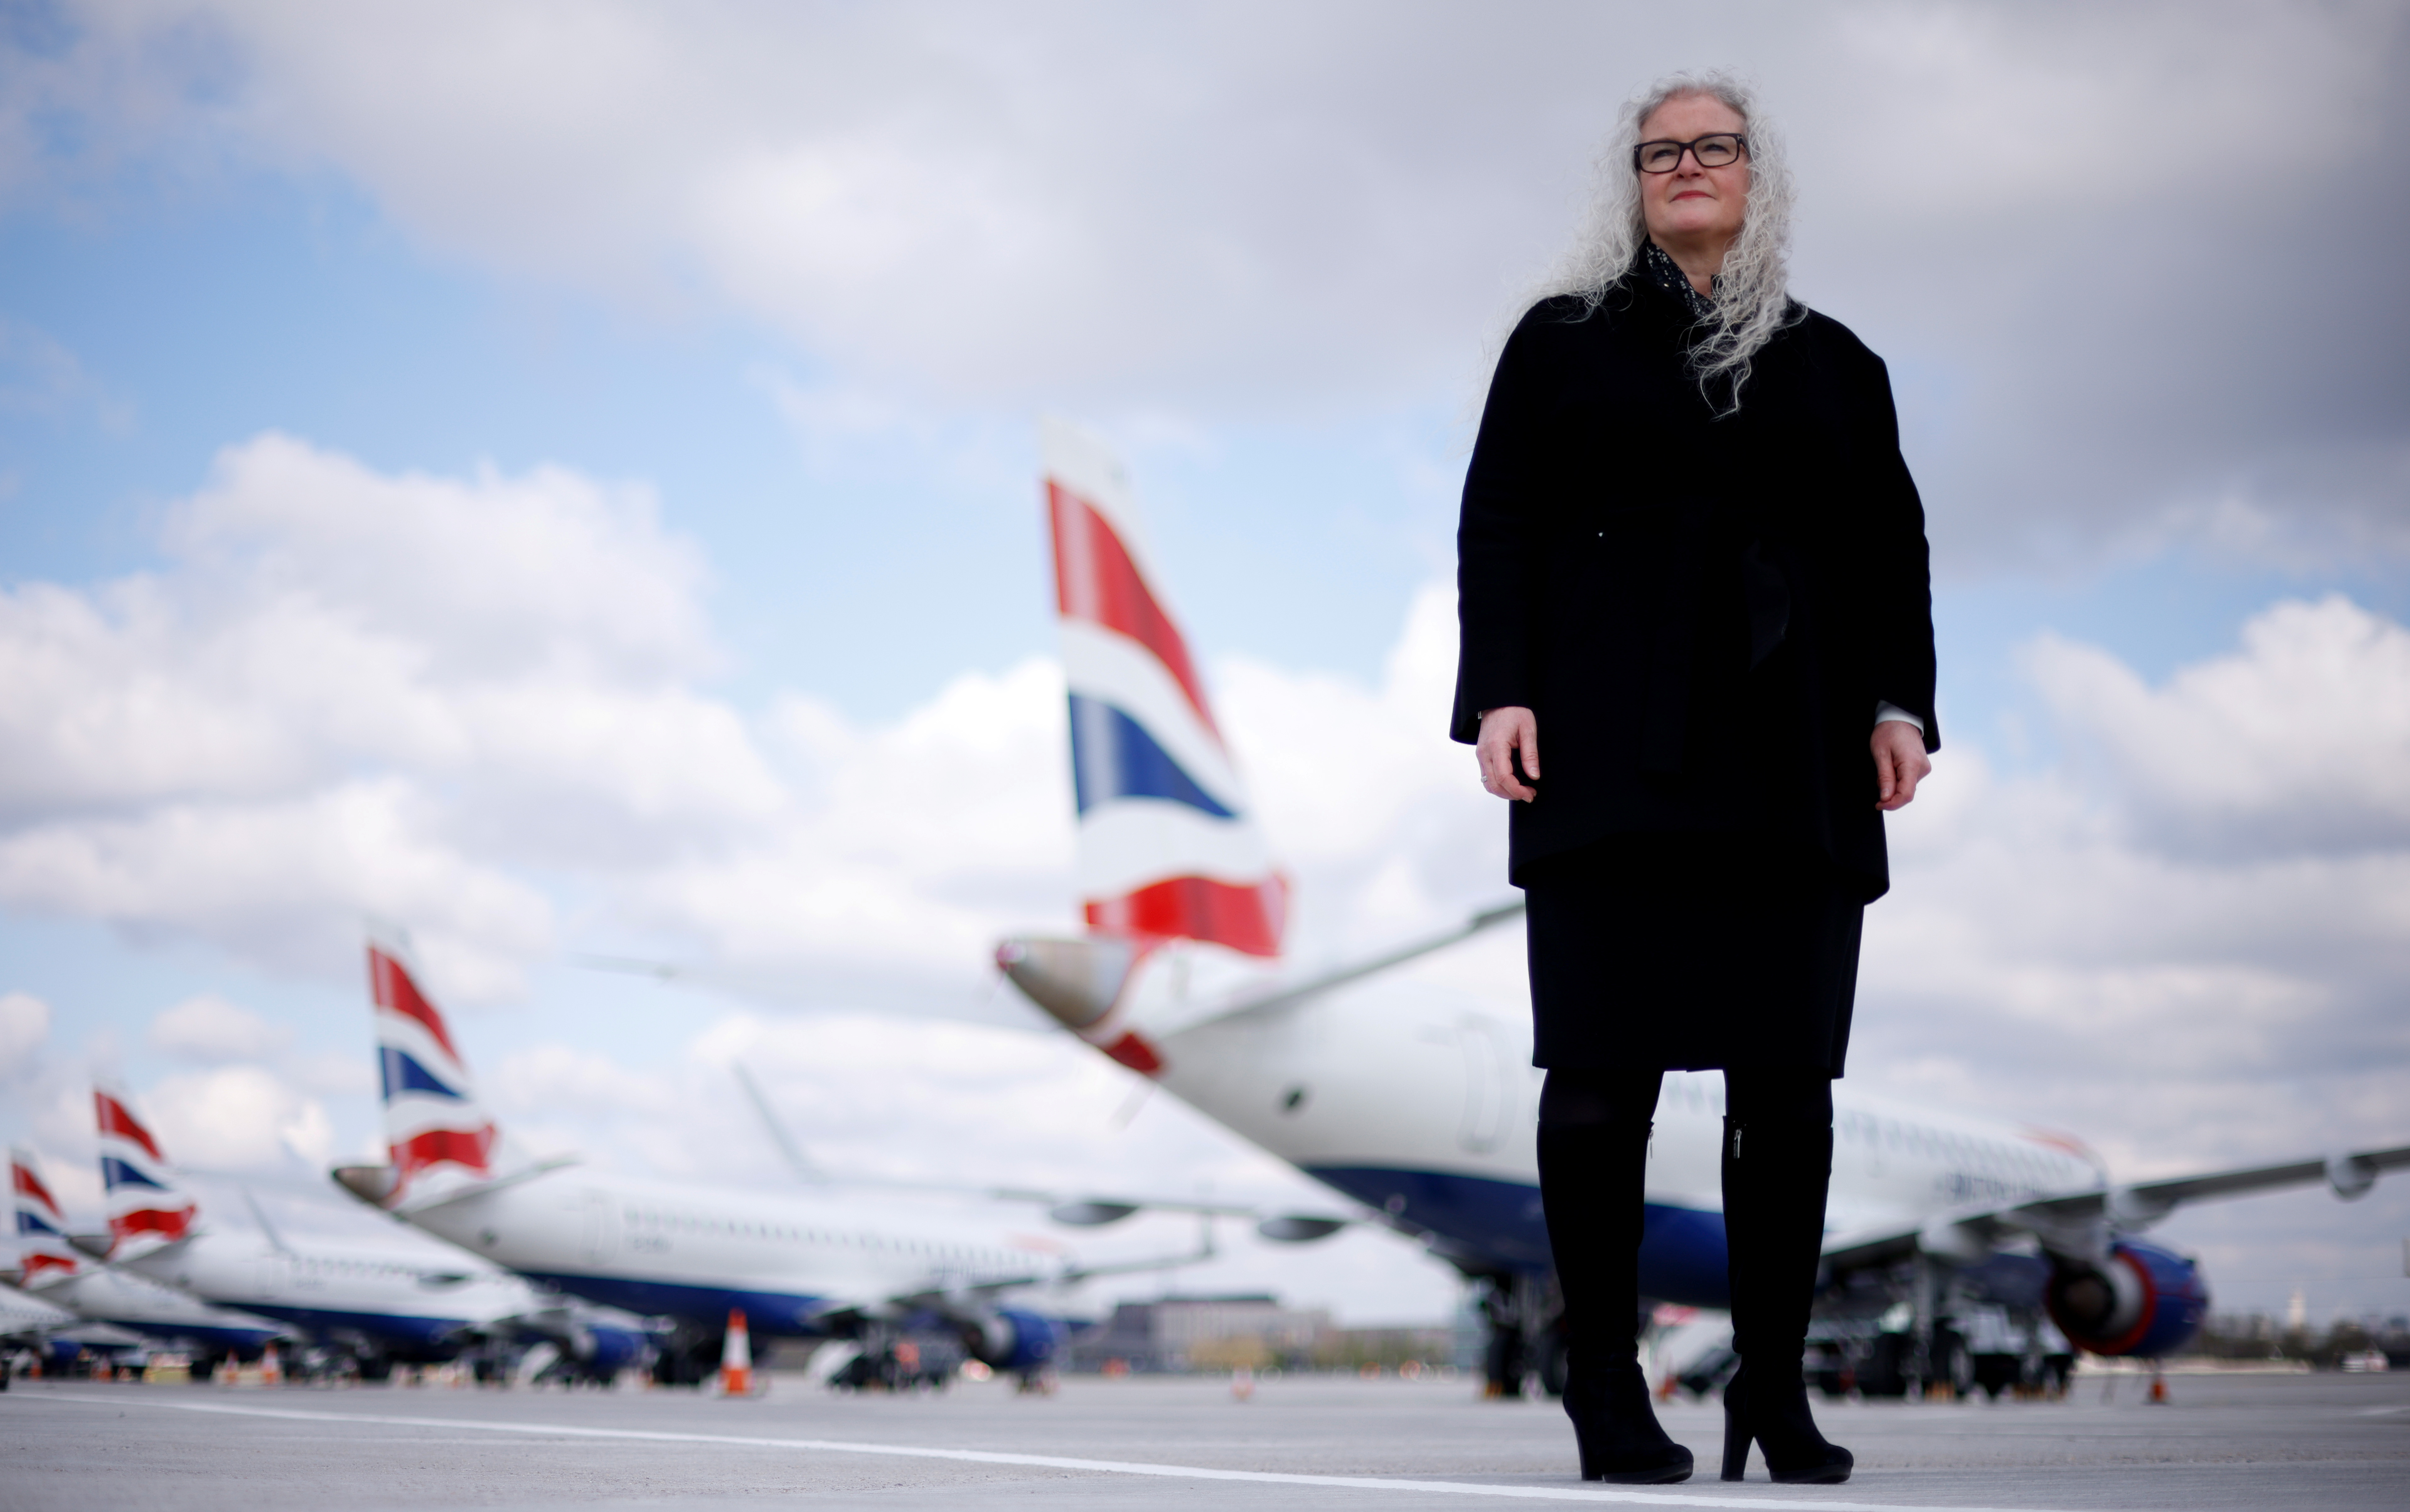 Alison FitzGerald, chief operating officer of London City Airport poses for a photograph at LCY, Britain, April 29, 2021.  REUTERS/John Sibley